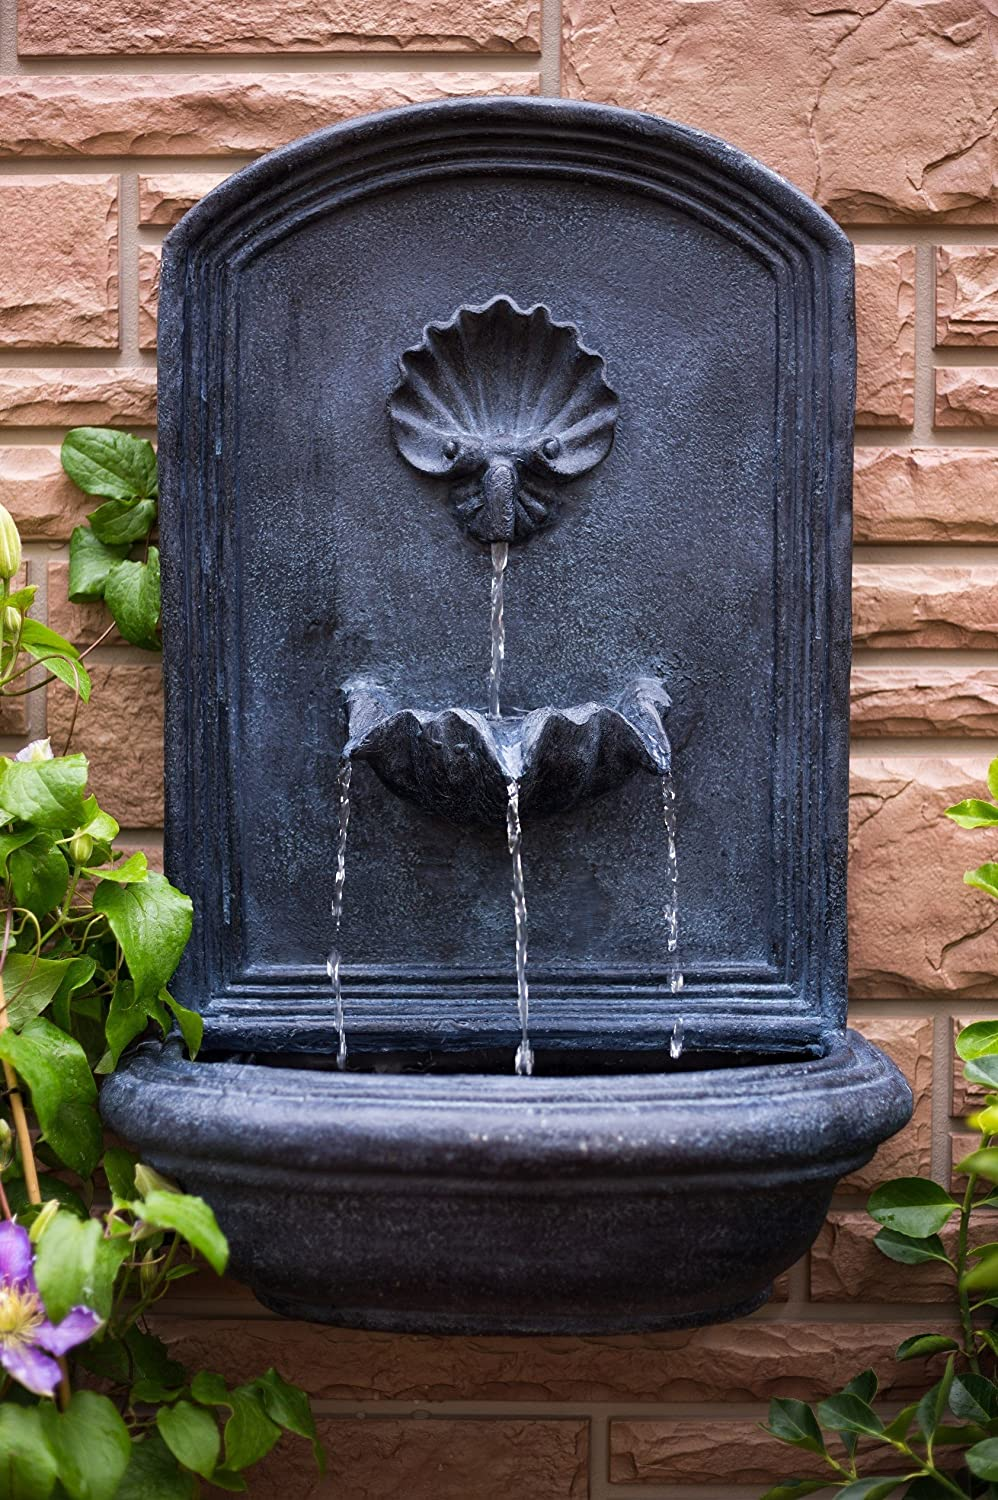 Amazon.com : The Napoli   Outdoor Wall Fountain   Slate Grey   Water  Feature For Garden, Patio And Landscape Enhancement : Wall Mounted Garden  Fountains ...